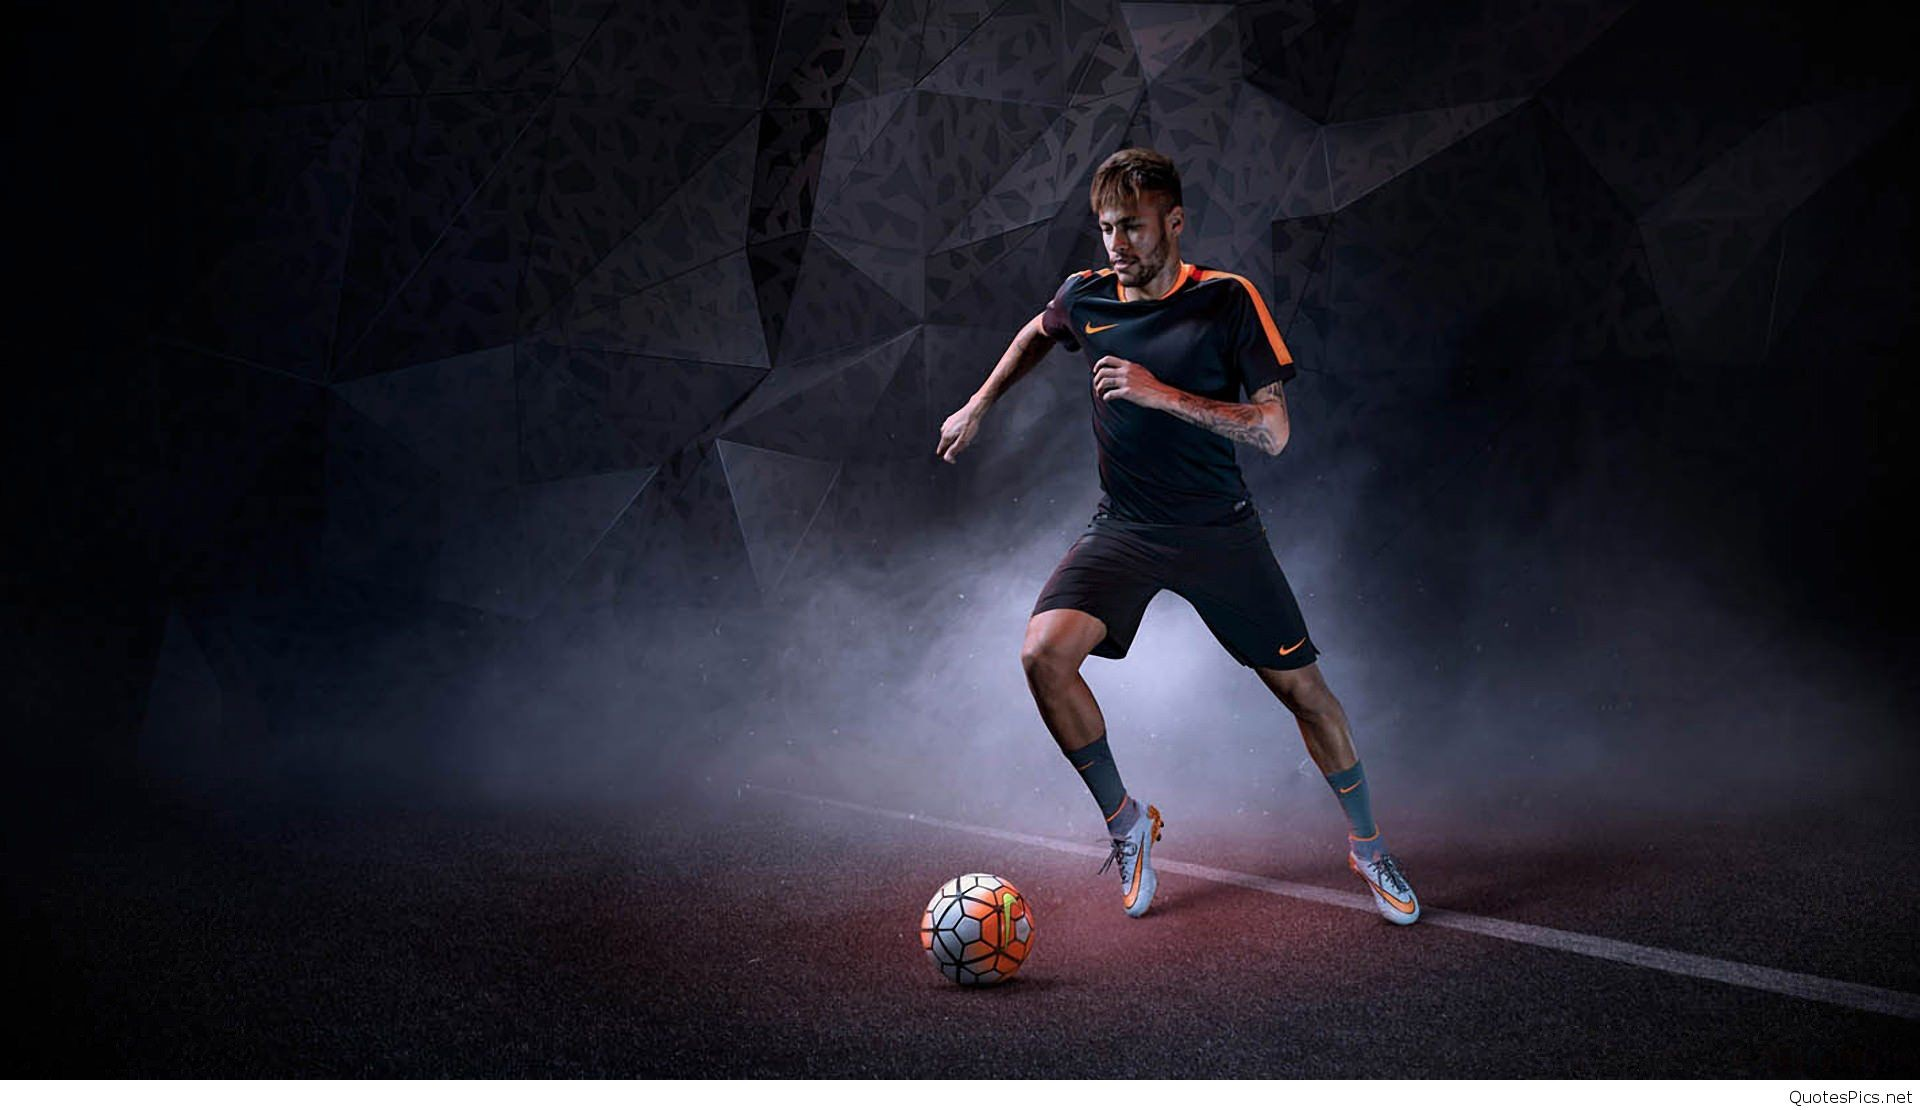 Nike Soccer Wallpaper 2018 67 Pictures